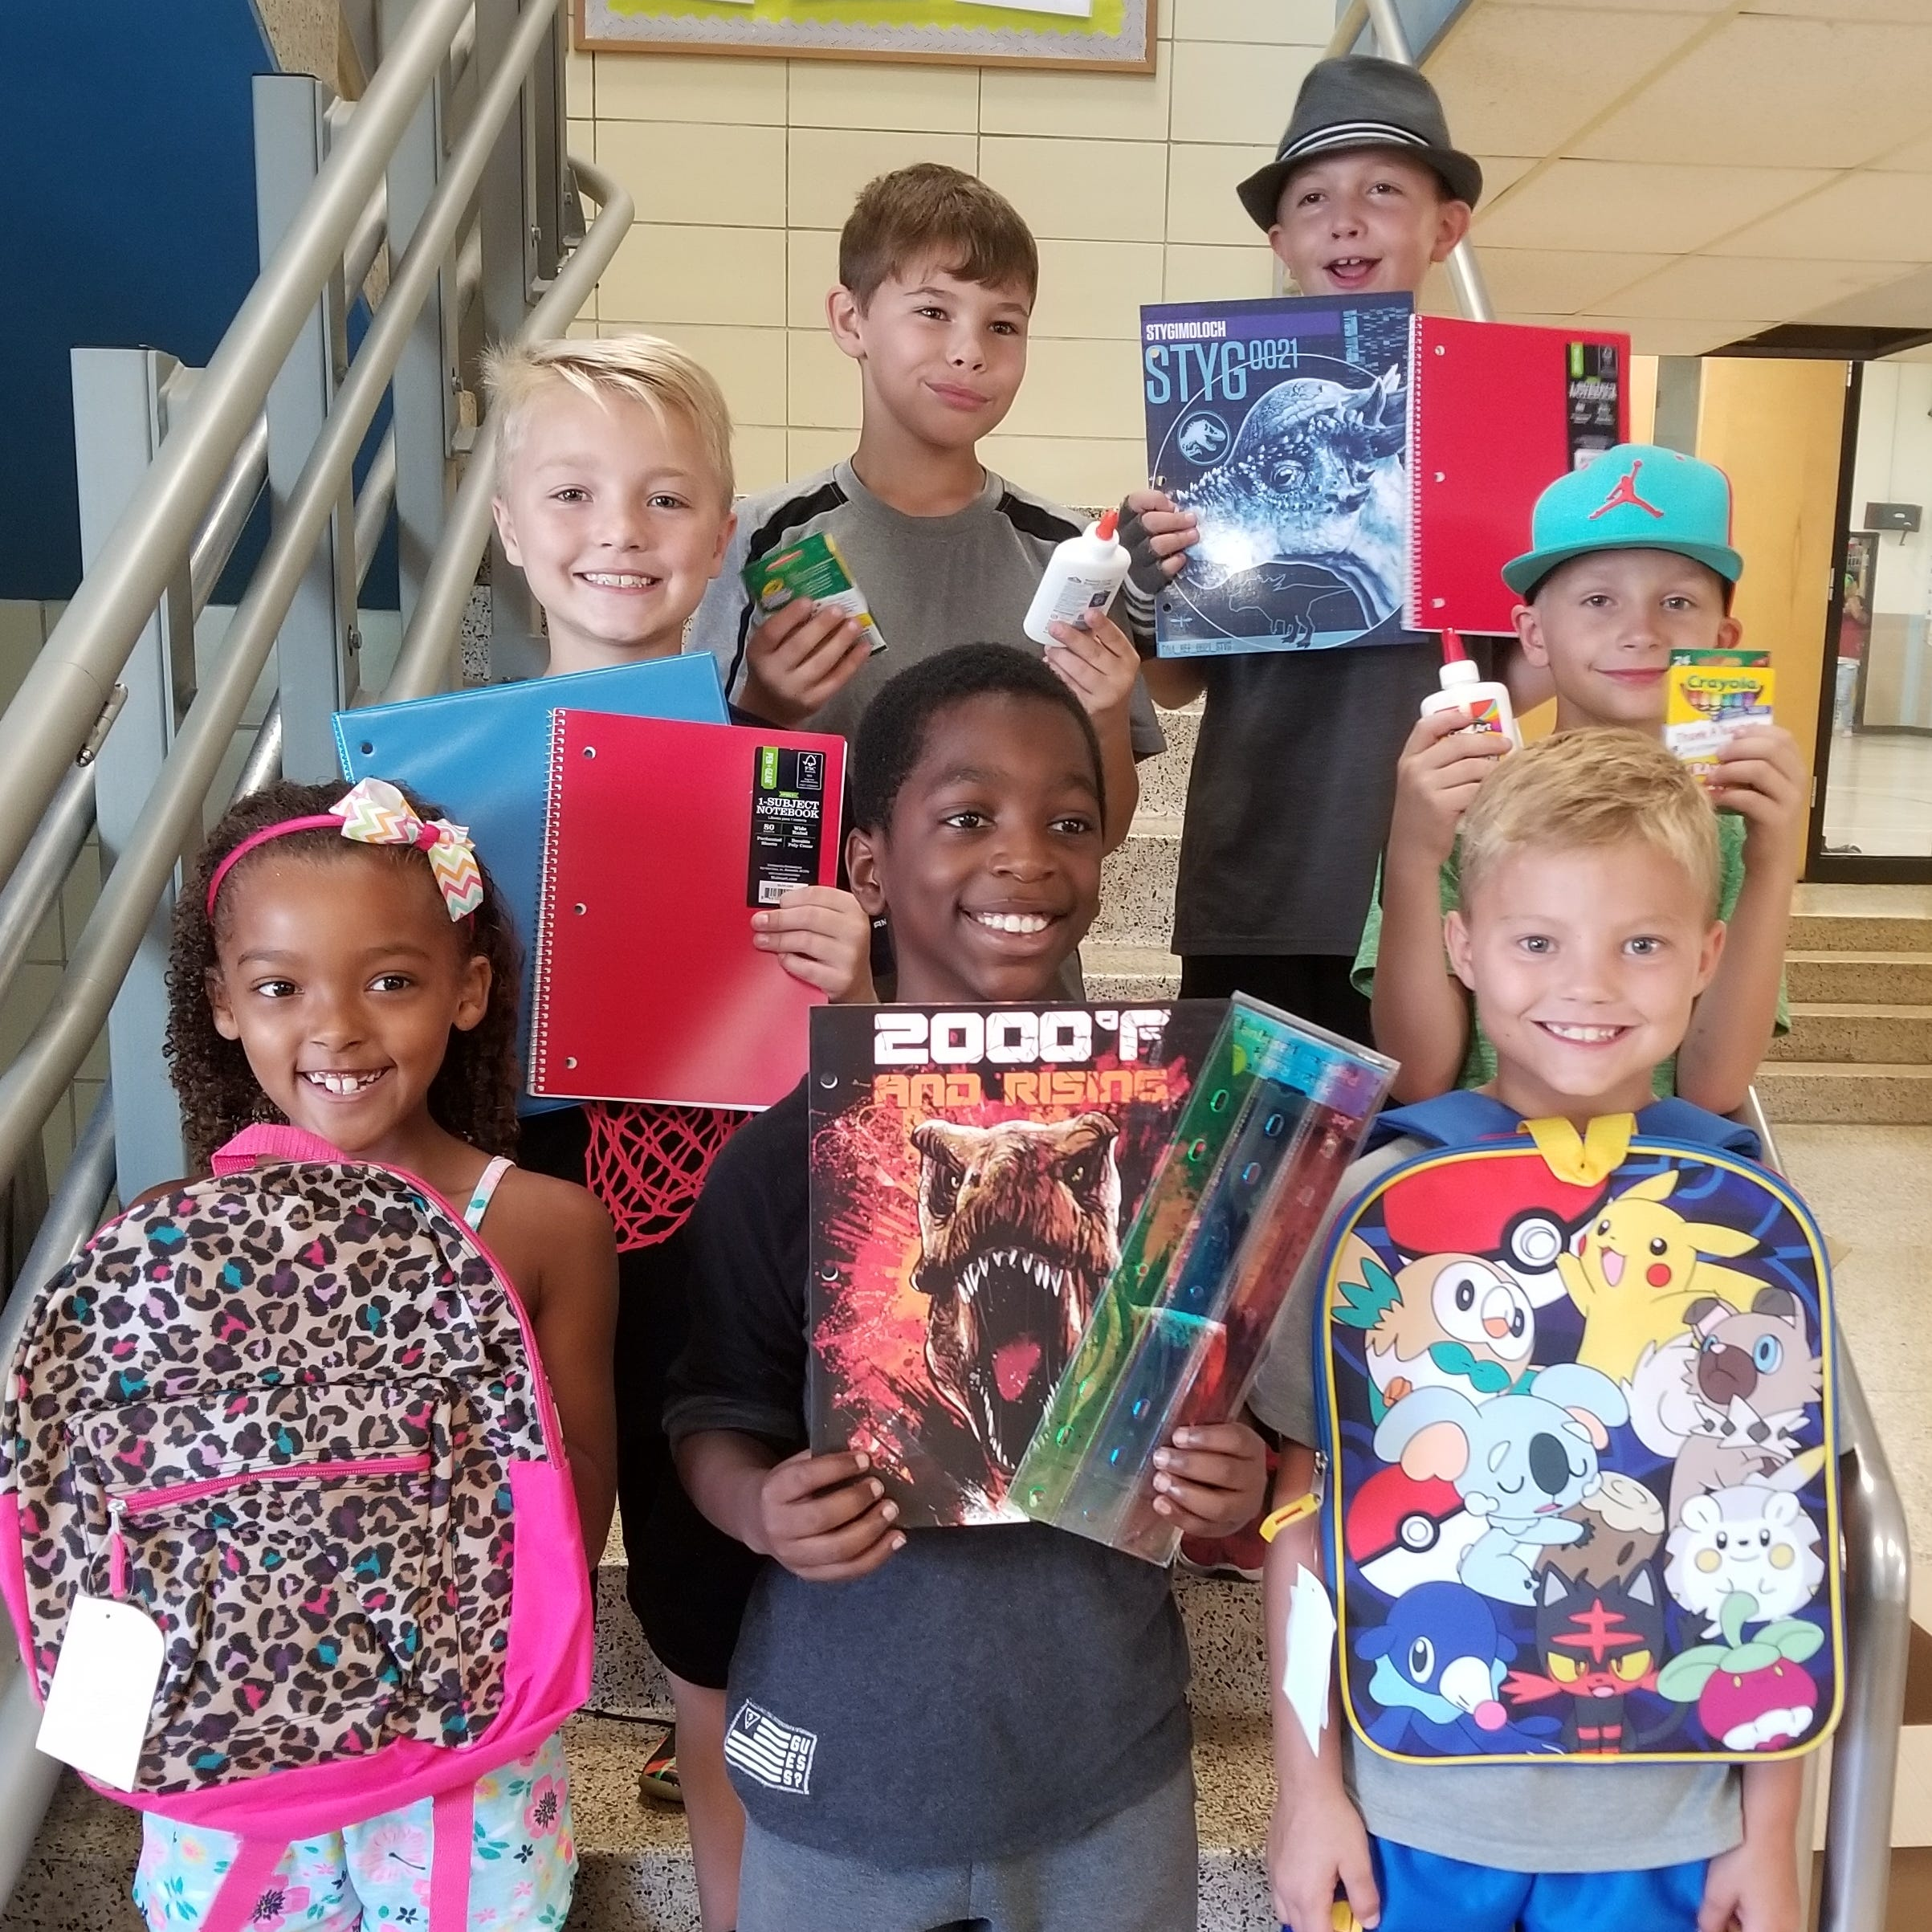 Life Briefs: Domtar donates 4,000 school supply items to Boys and Girls Club